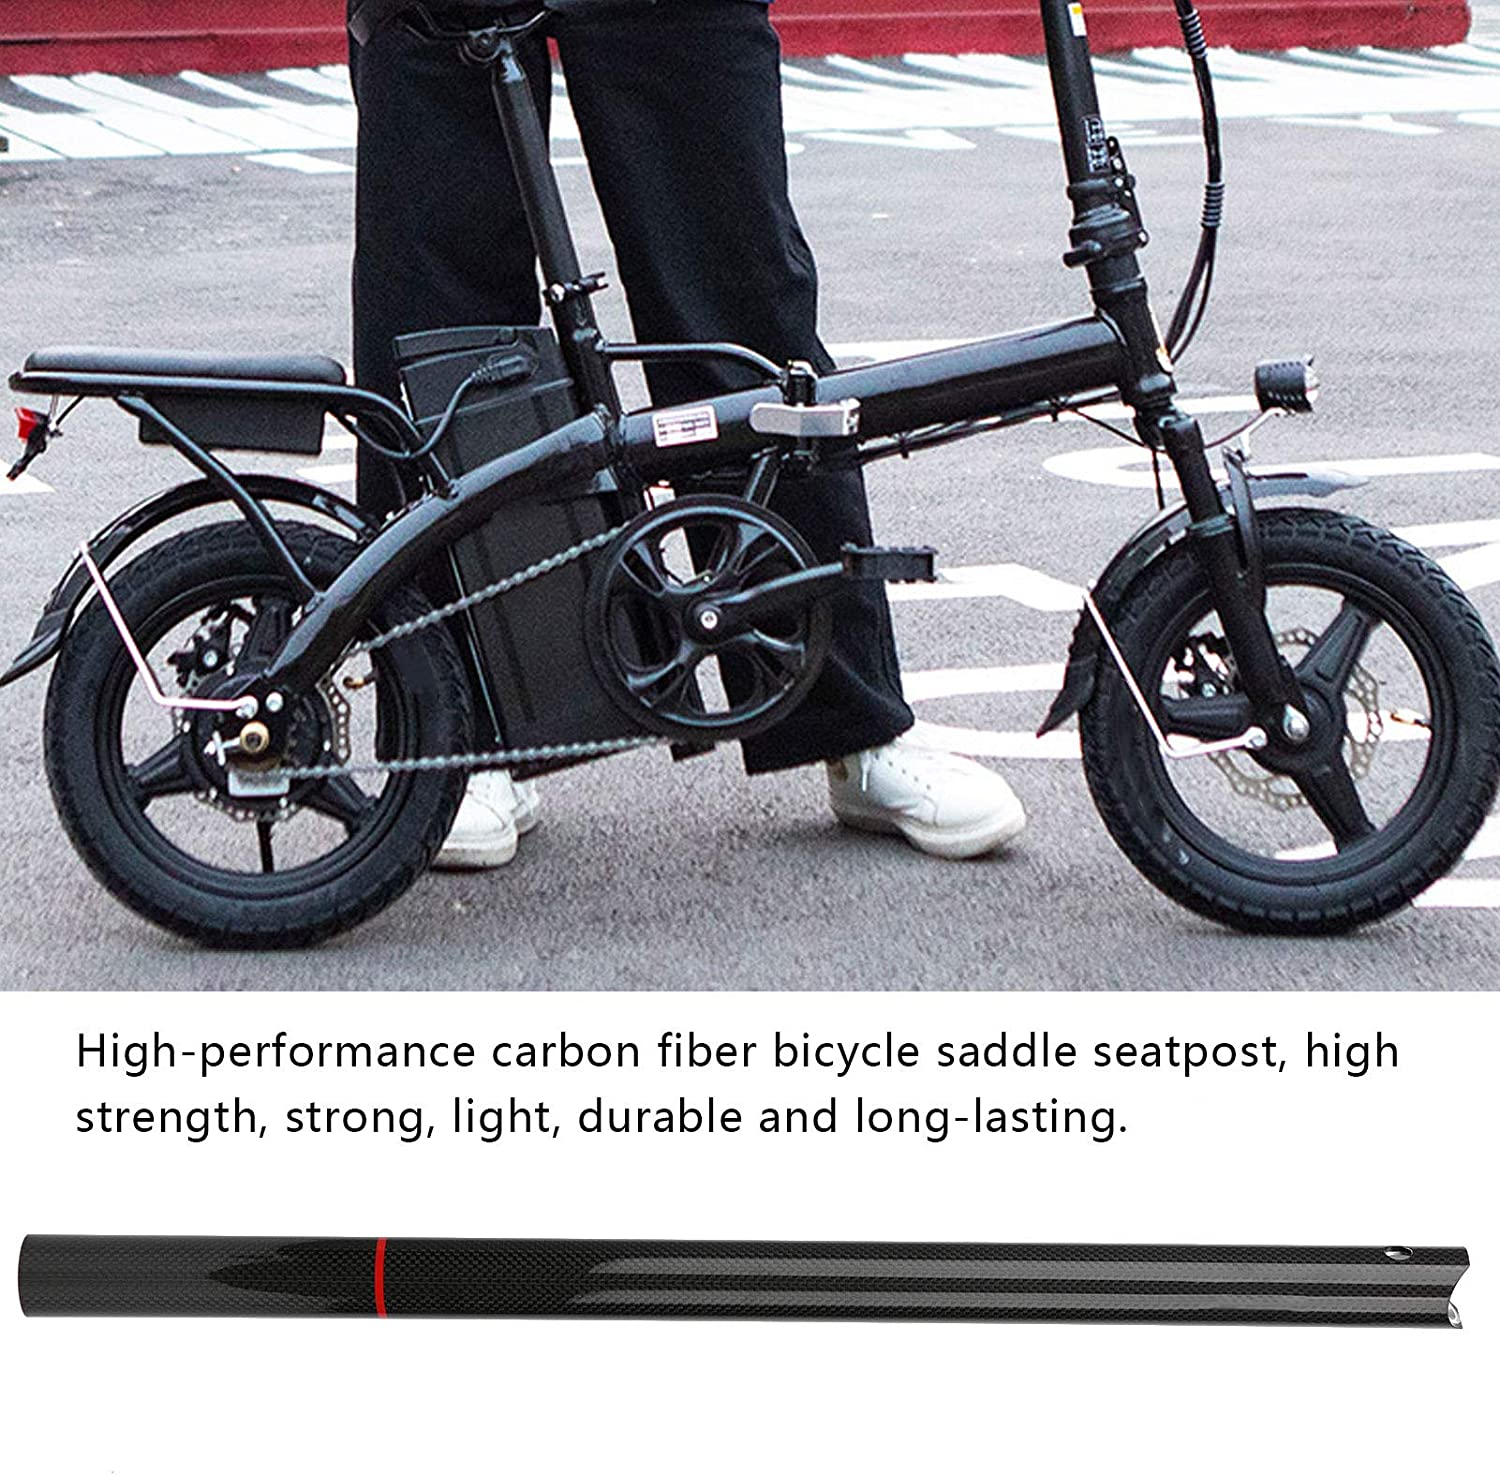 Carbon Seatpost 33.9 580mm Bike Seatpost Suitable for Most Bicycle Folding Bike